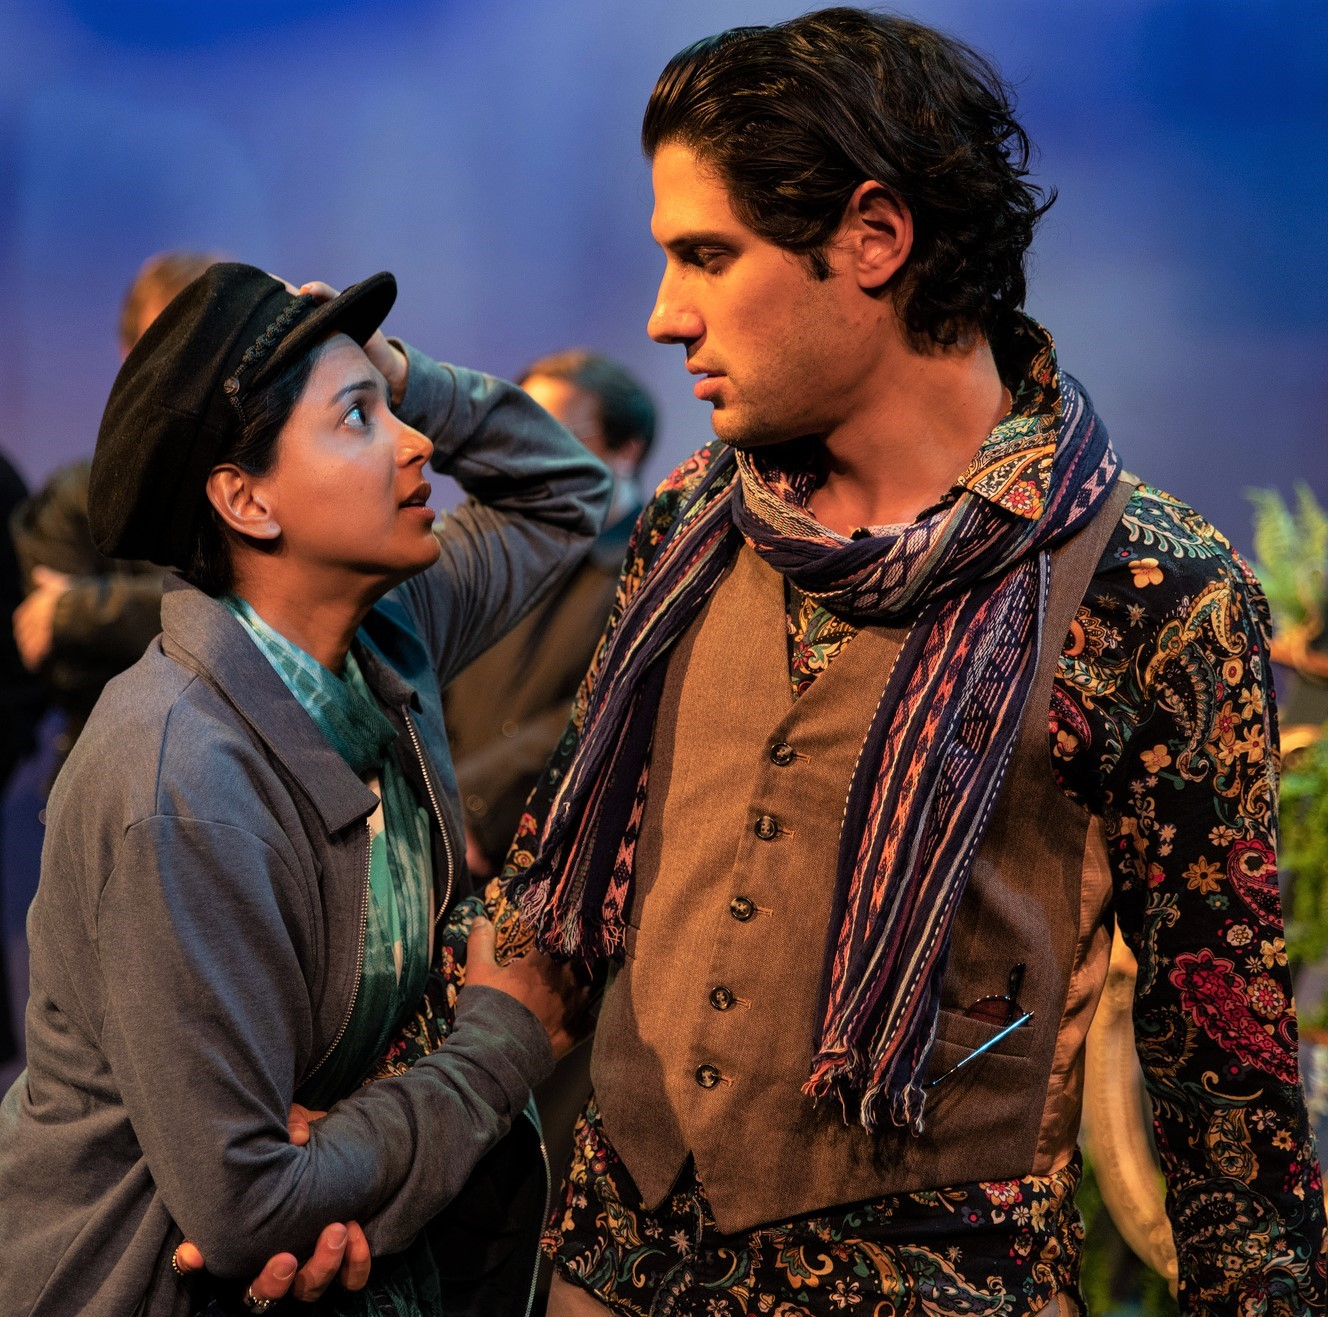 Alyssa Diamond as Viola (disguised as Cesario) and Jonathan Reed Wexler as Orsino in  Twelfth Night . Top: A priest (Shashwat Gupta, left) marries Sebastian (Kyle Primack) and Olivia (Karoline Patrick).